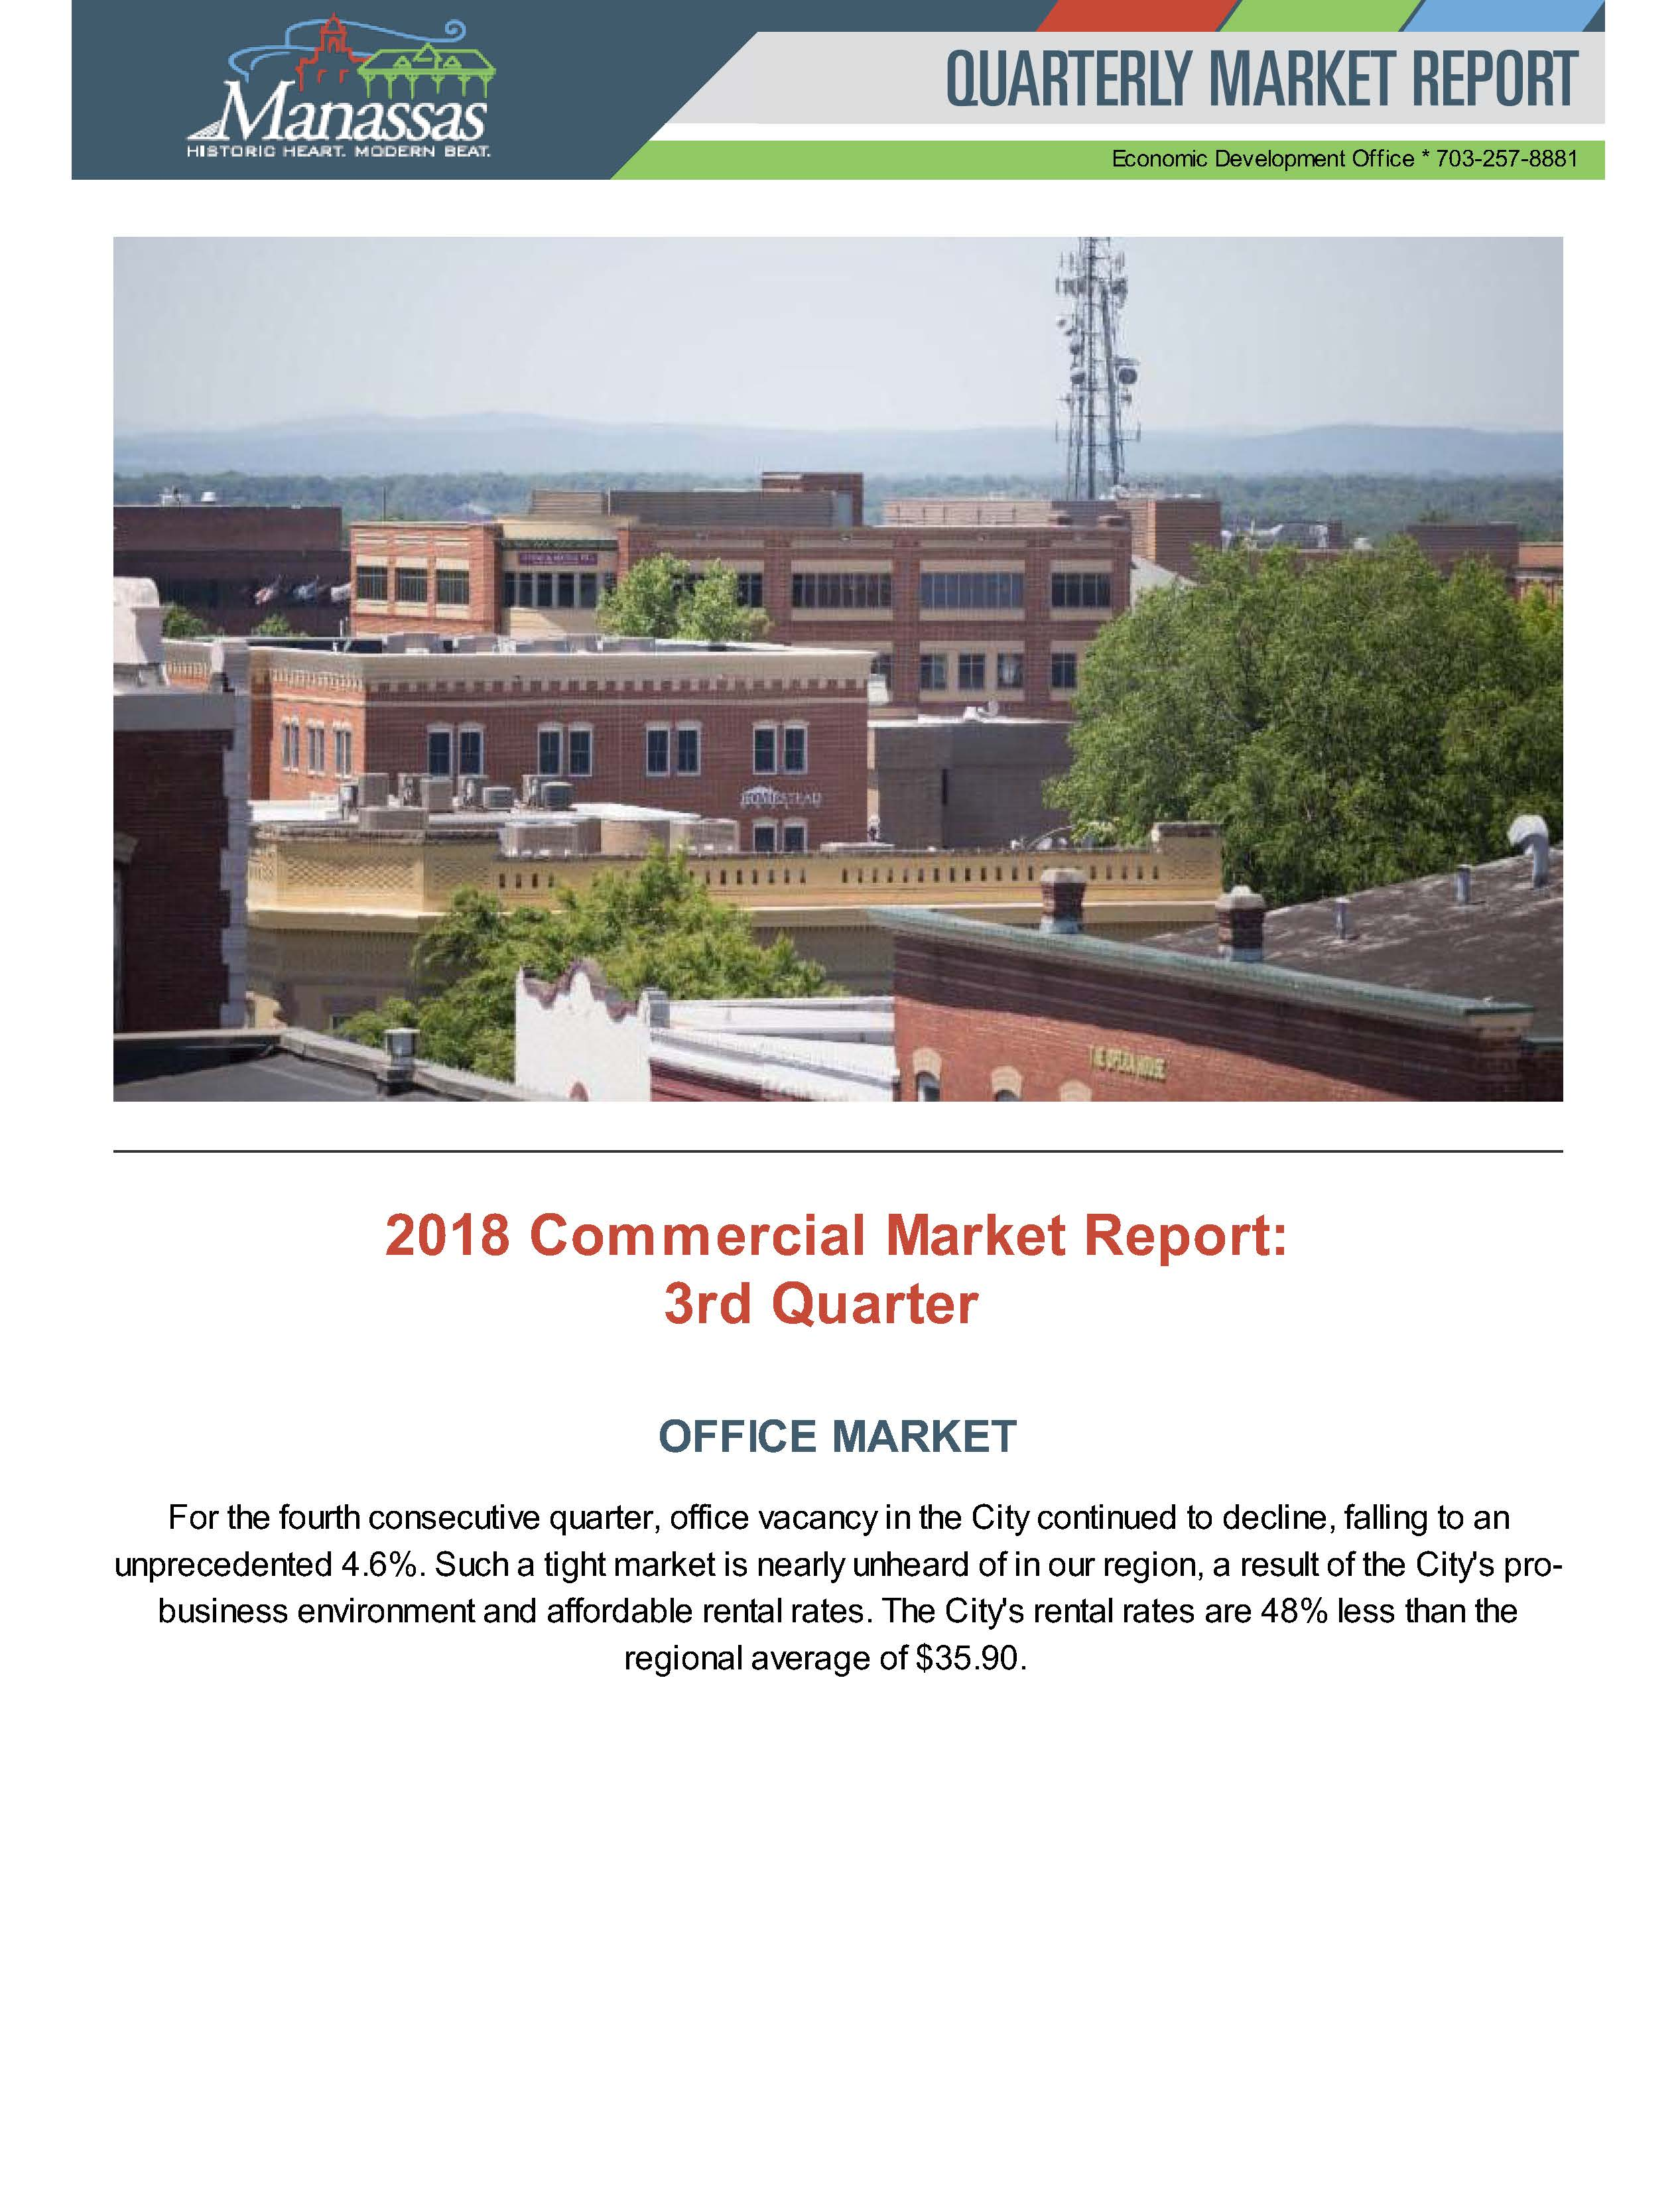 Q3-2018-Market-Report-1st-page-10-18-18_Page_1 Reports & Resources